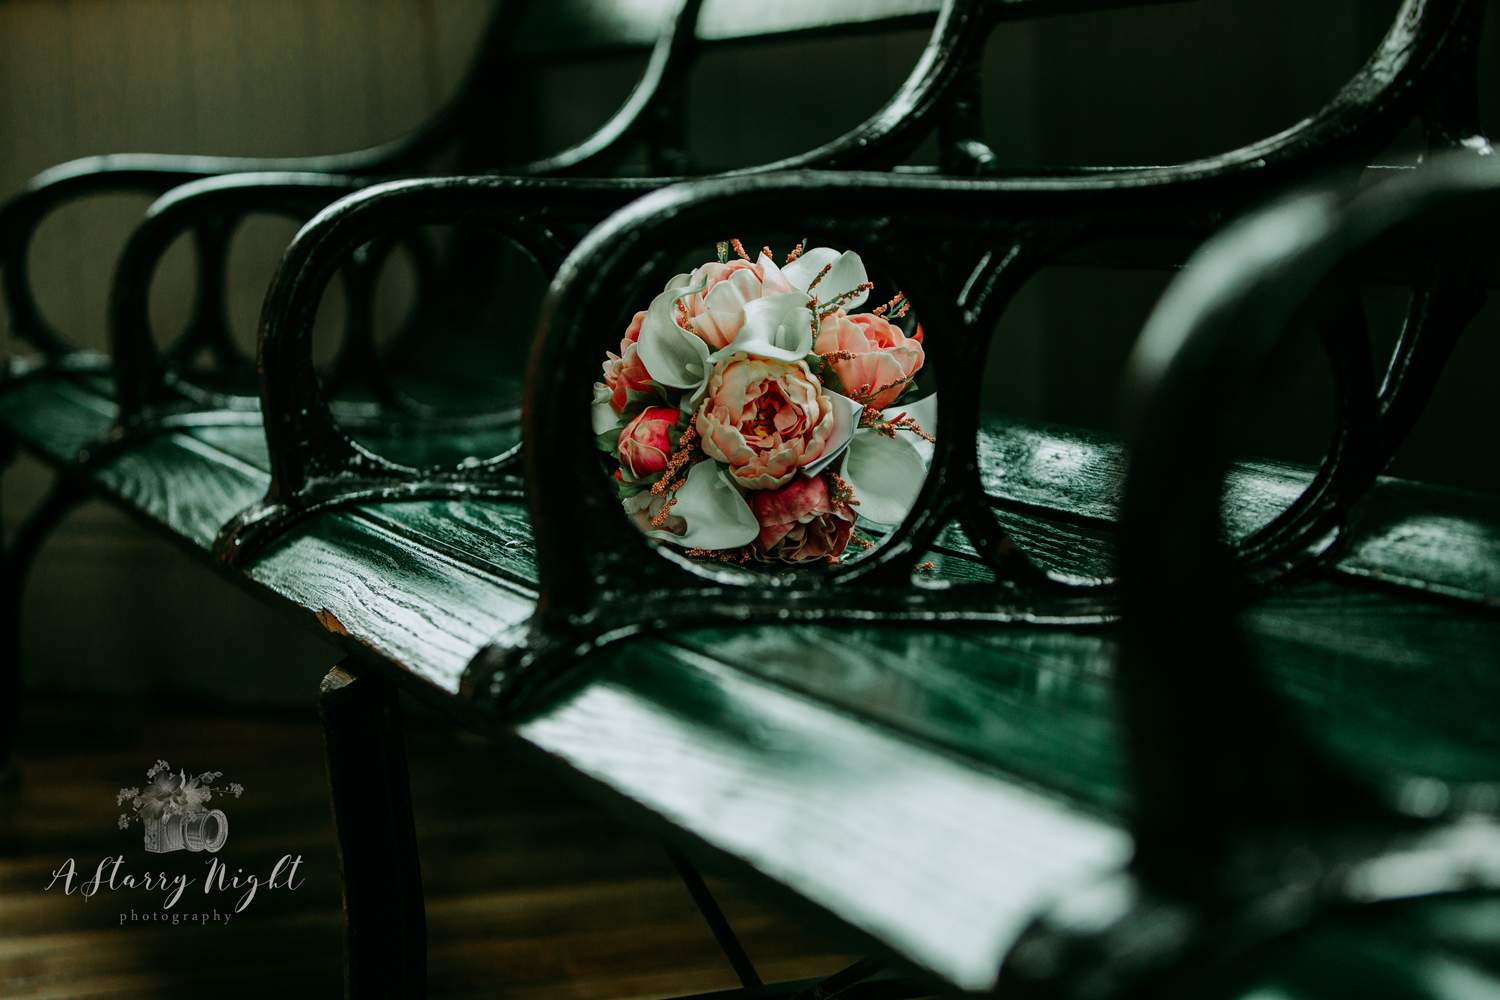 Shooting the bride's bouquet through the green bench at the Train Station